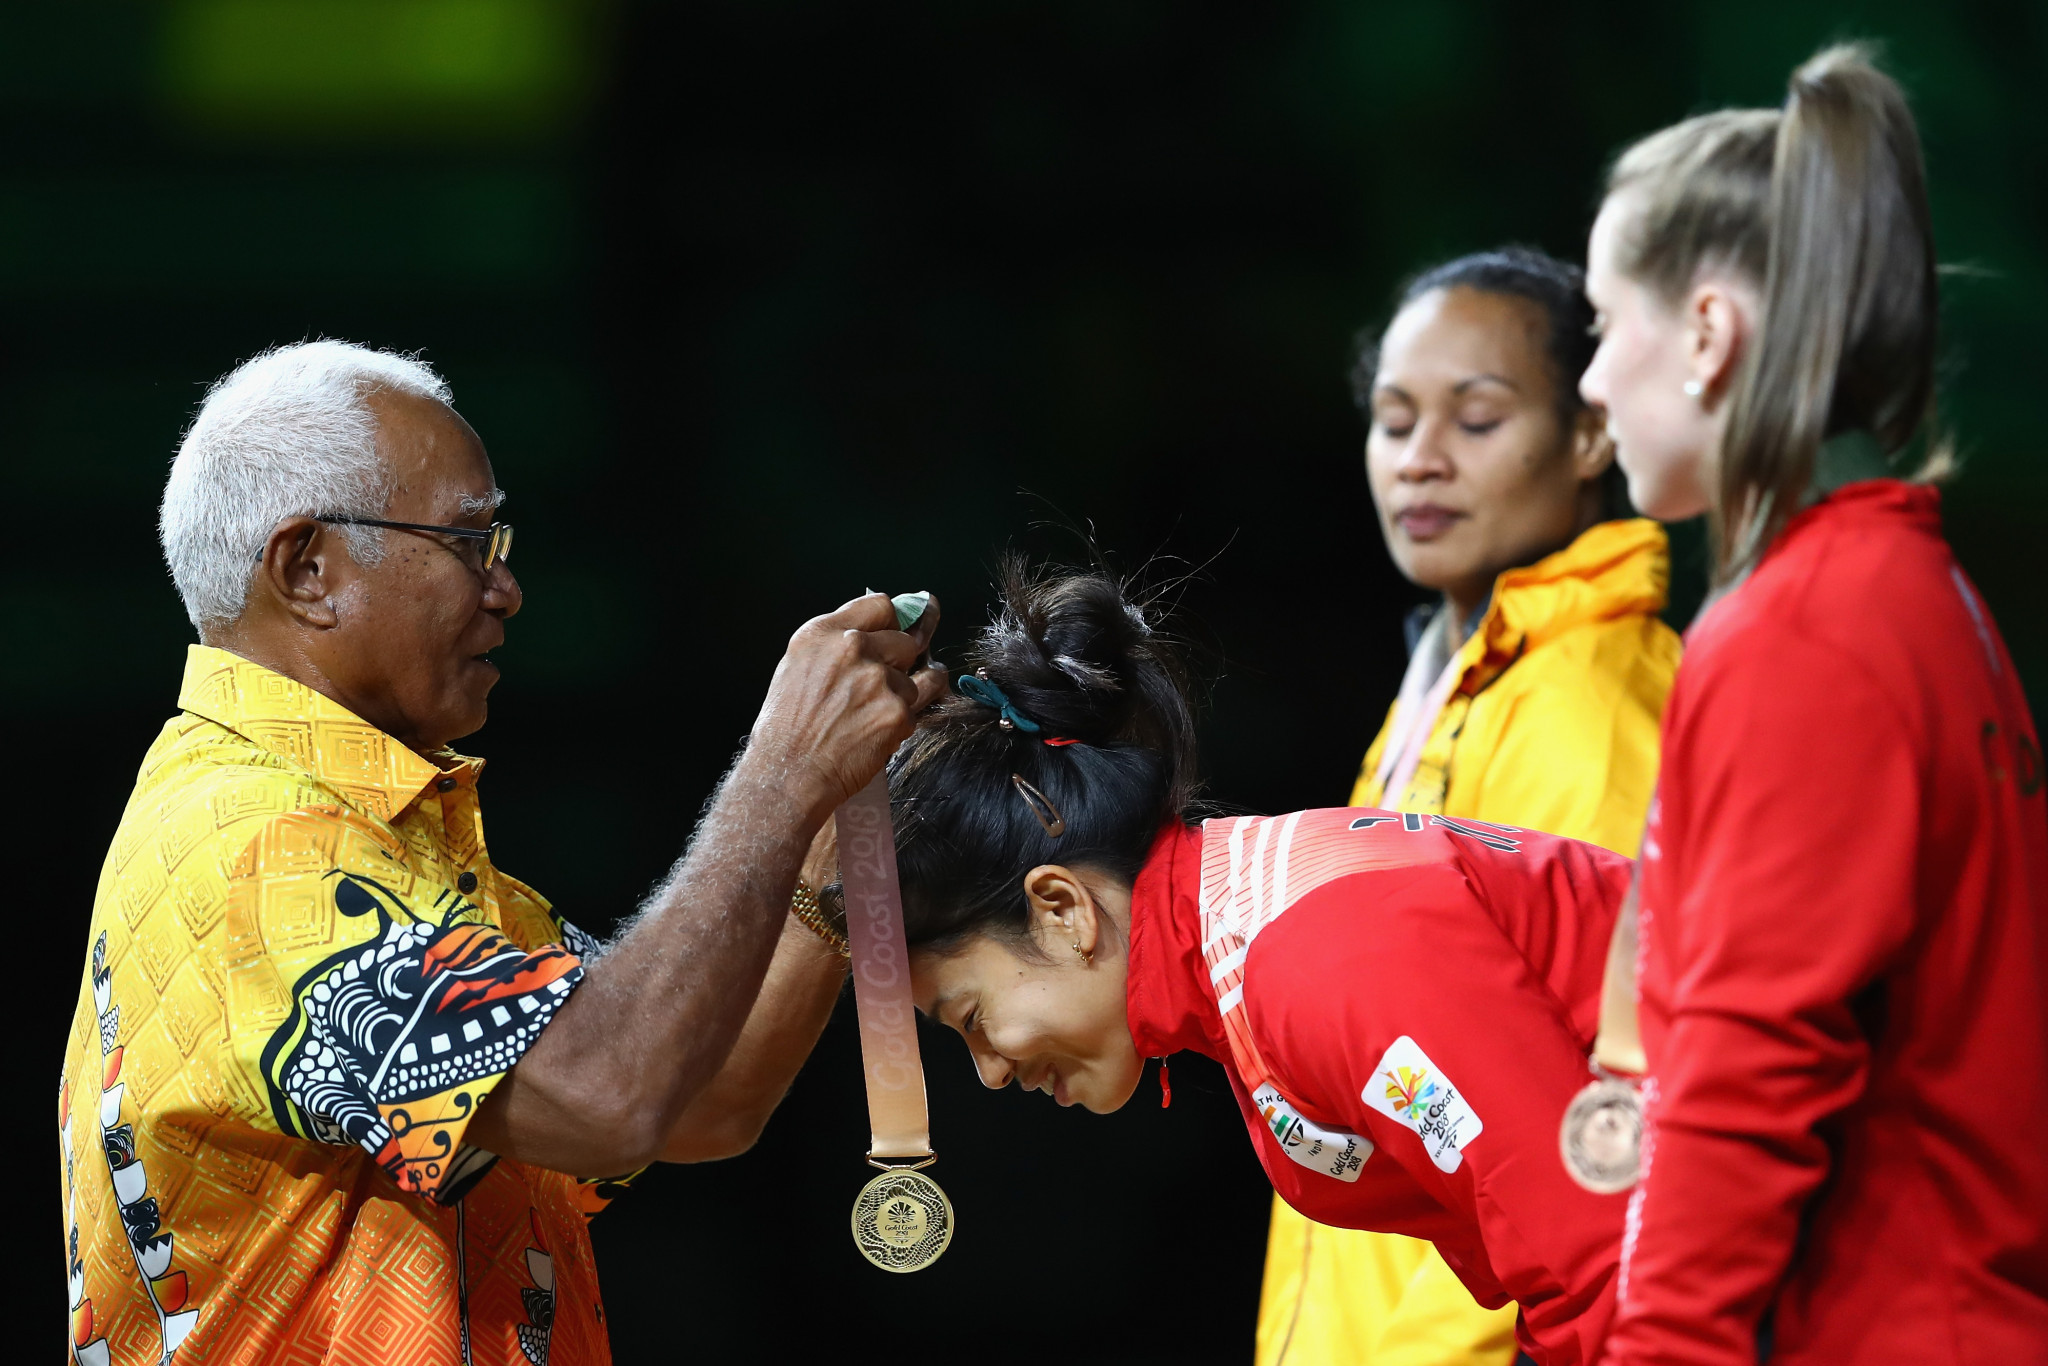 Sanjita Chanu Khumukcham receives a gold medal at gold Coast 2018 ©Getty Images